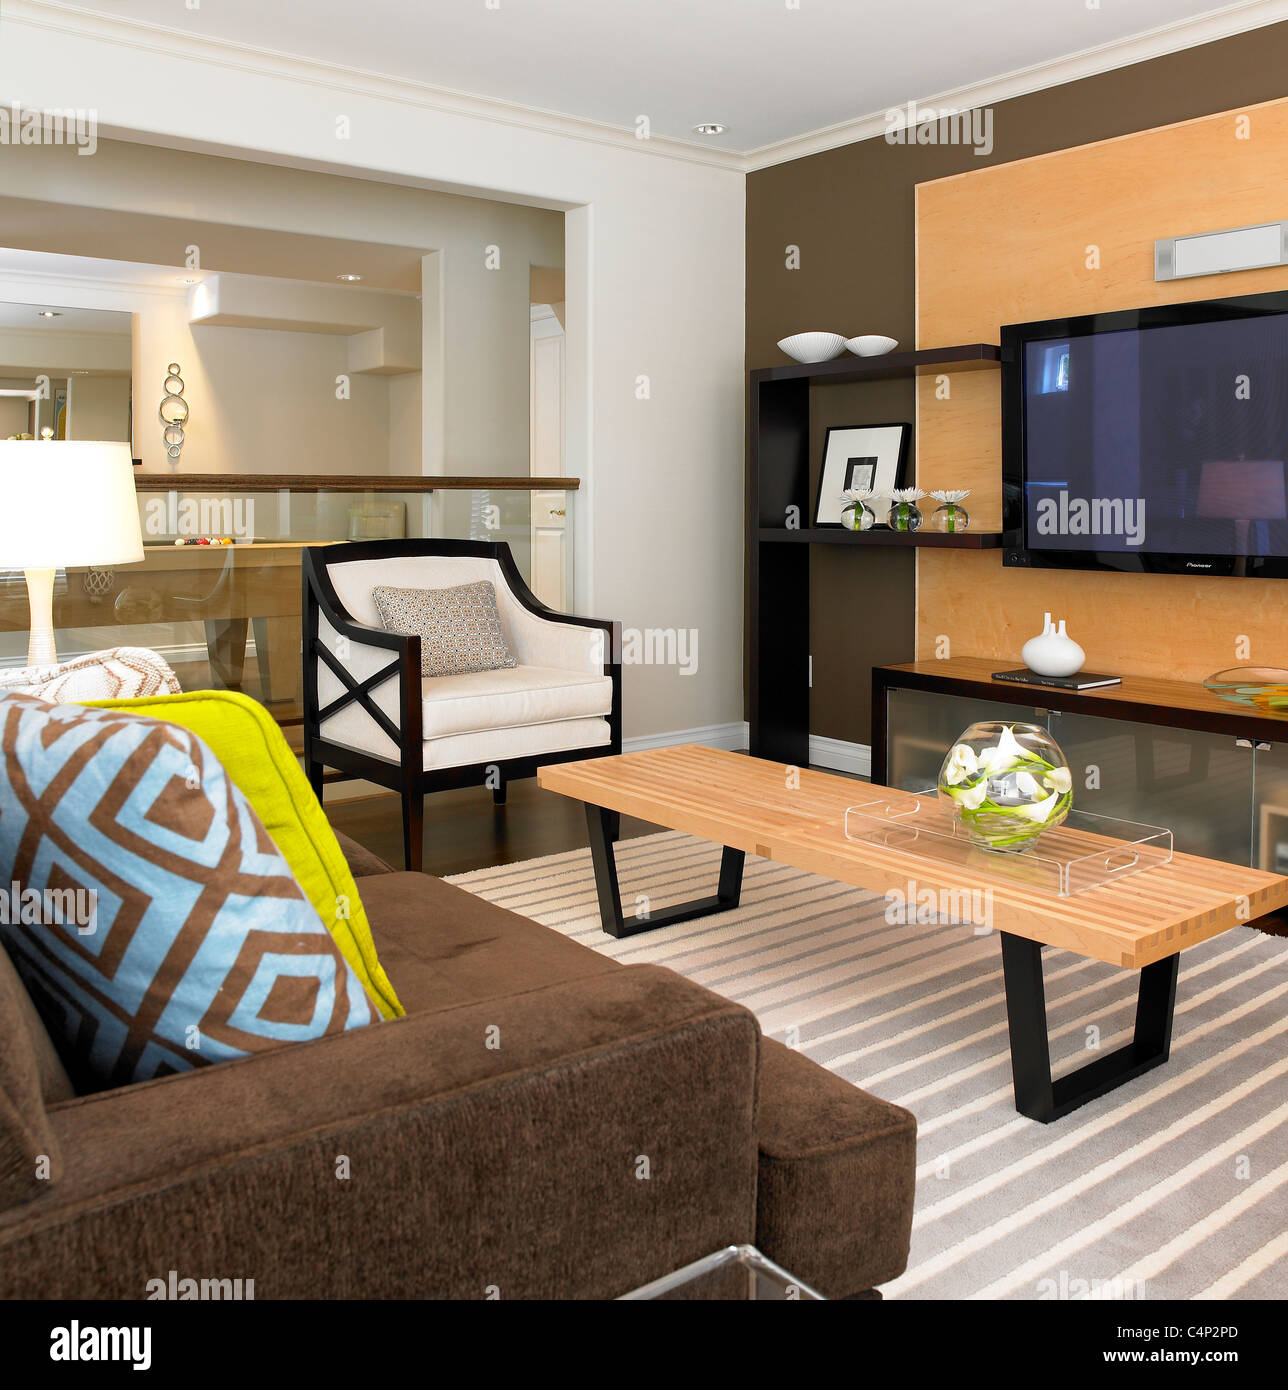 Modern living room with striped rug and geometric pillows victoria vancouver island b c canada